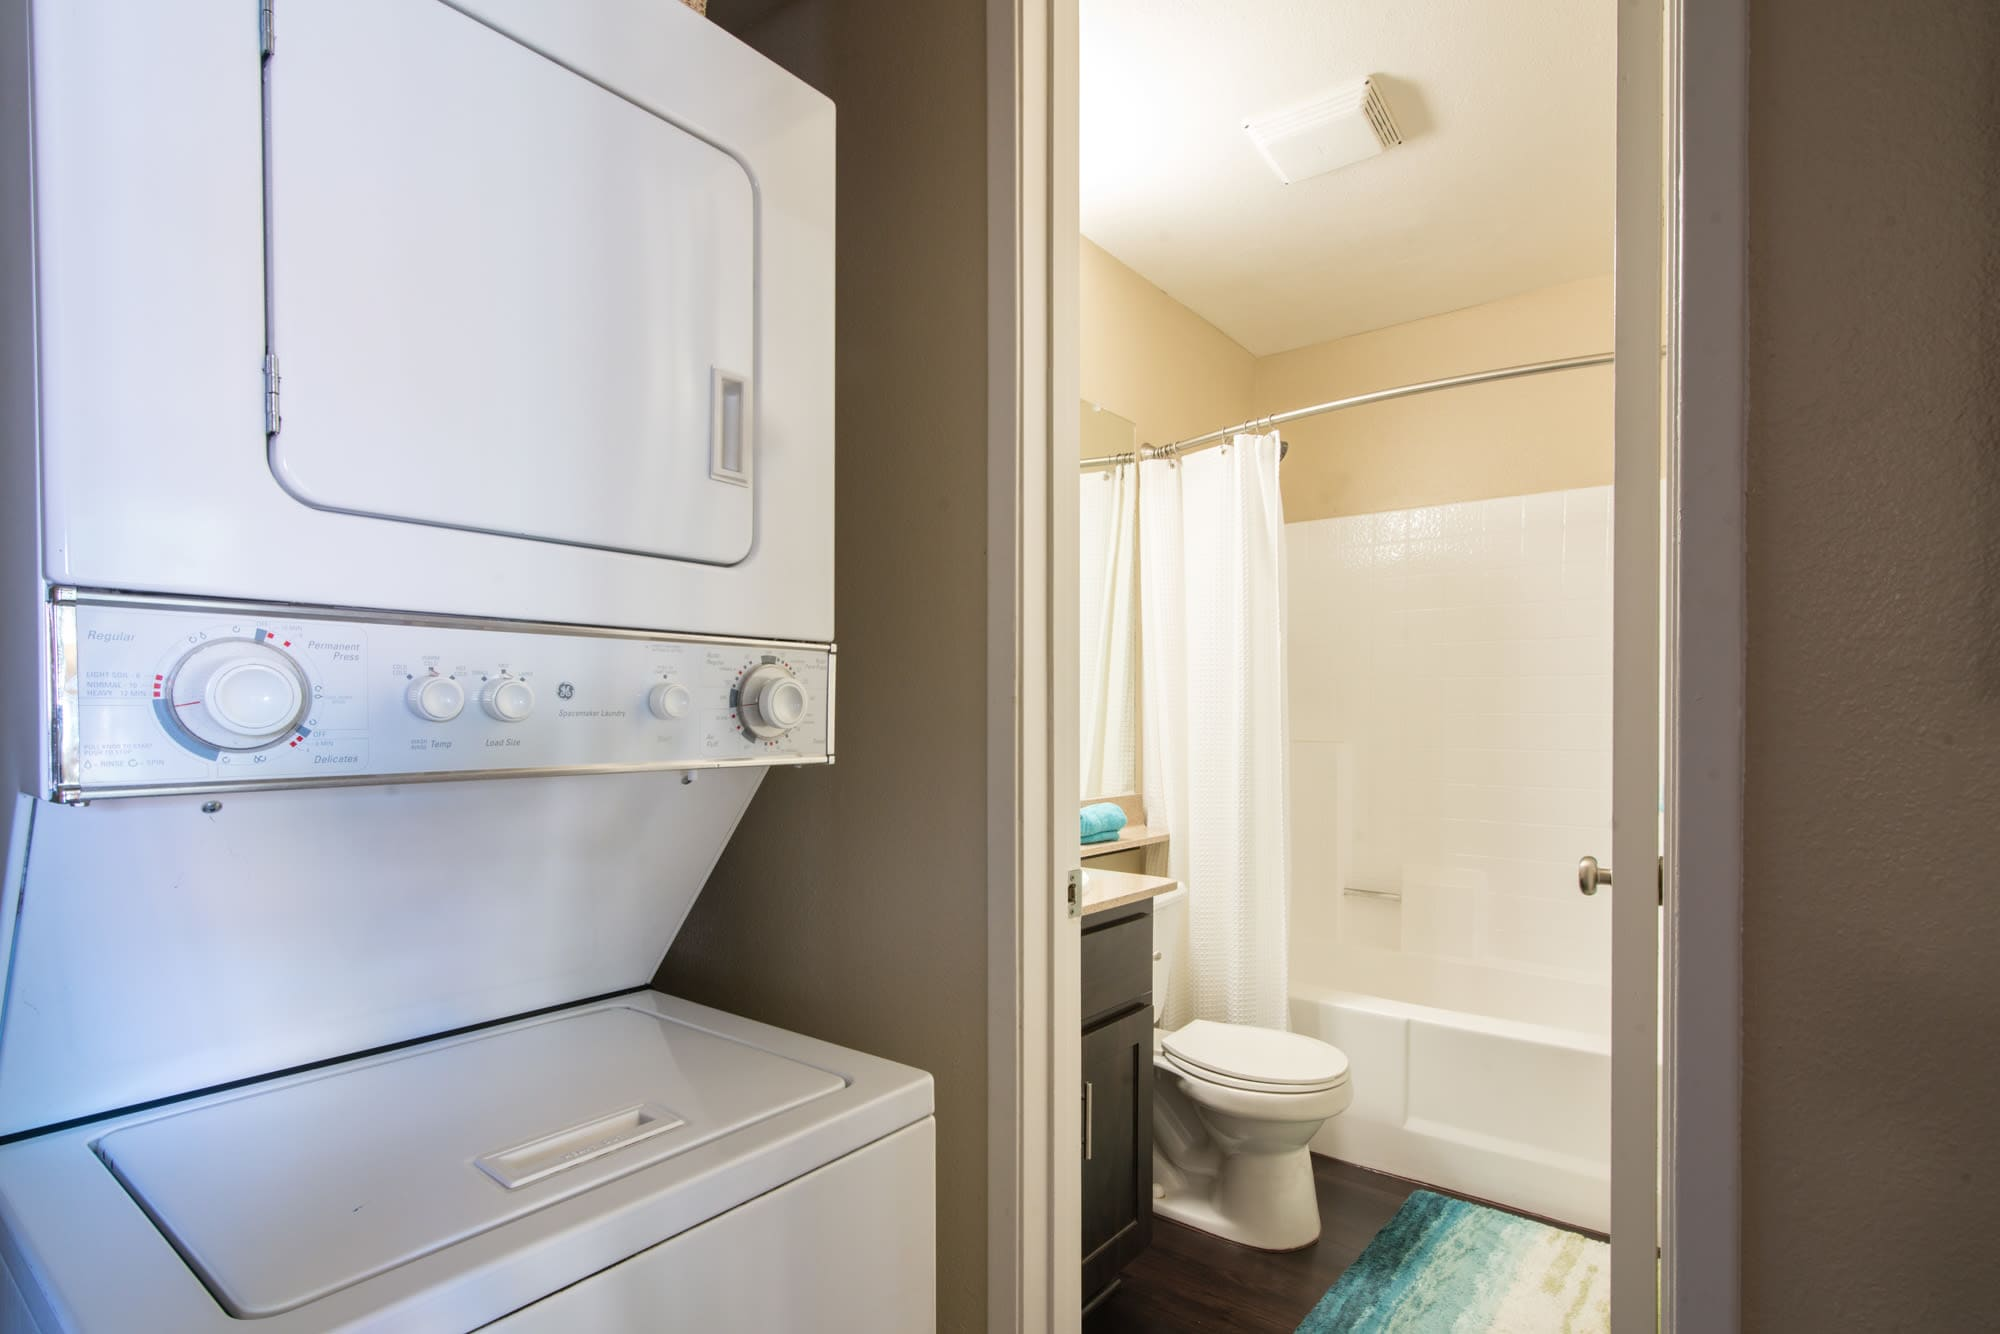 Bathroom and stackable washer and dryer at Terra Nova Villas in Chula Vista, CA